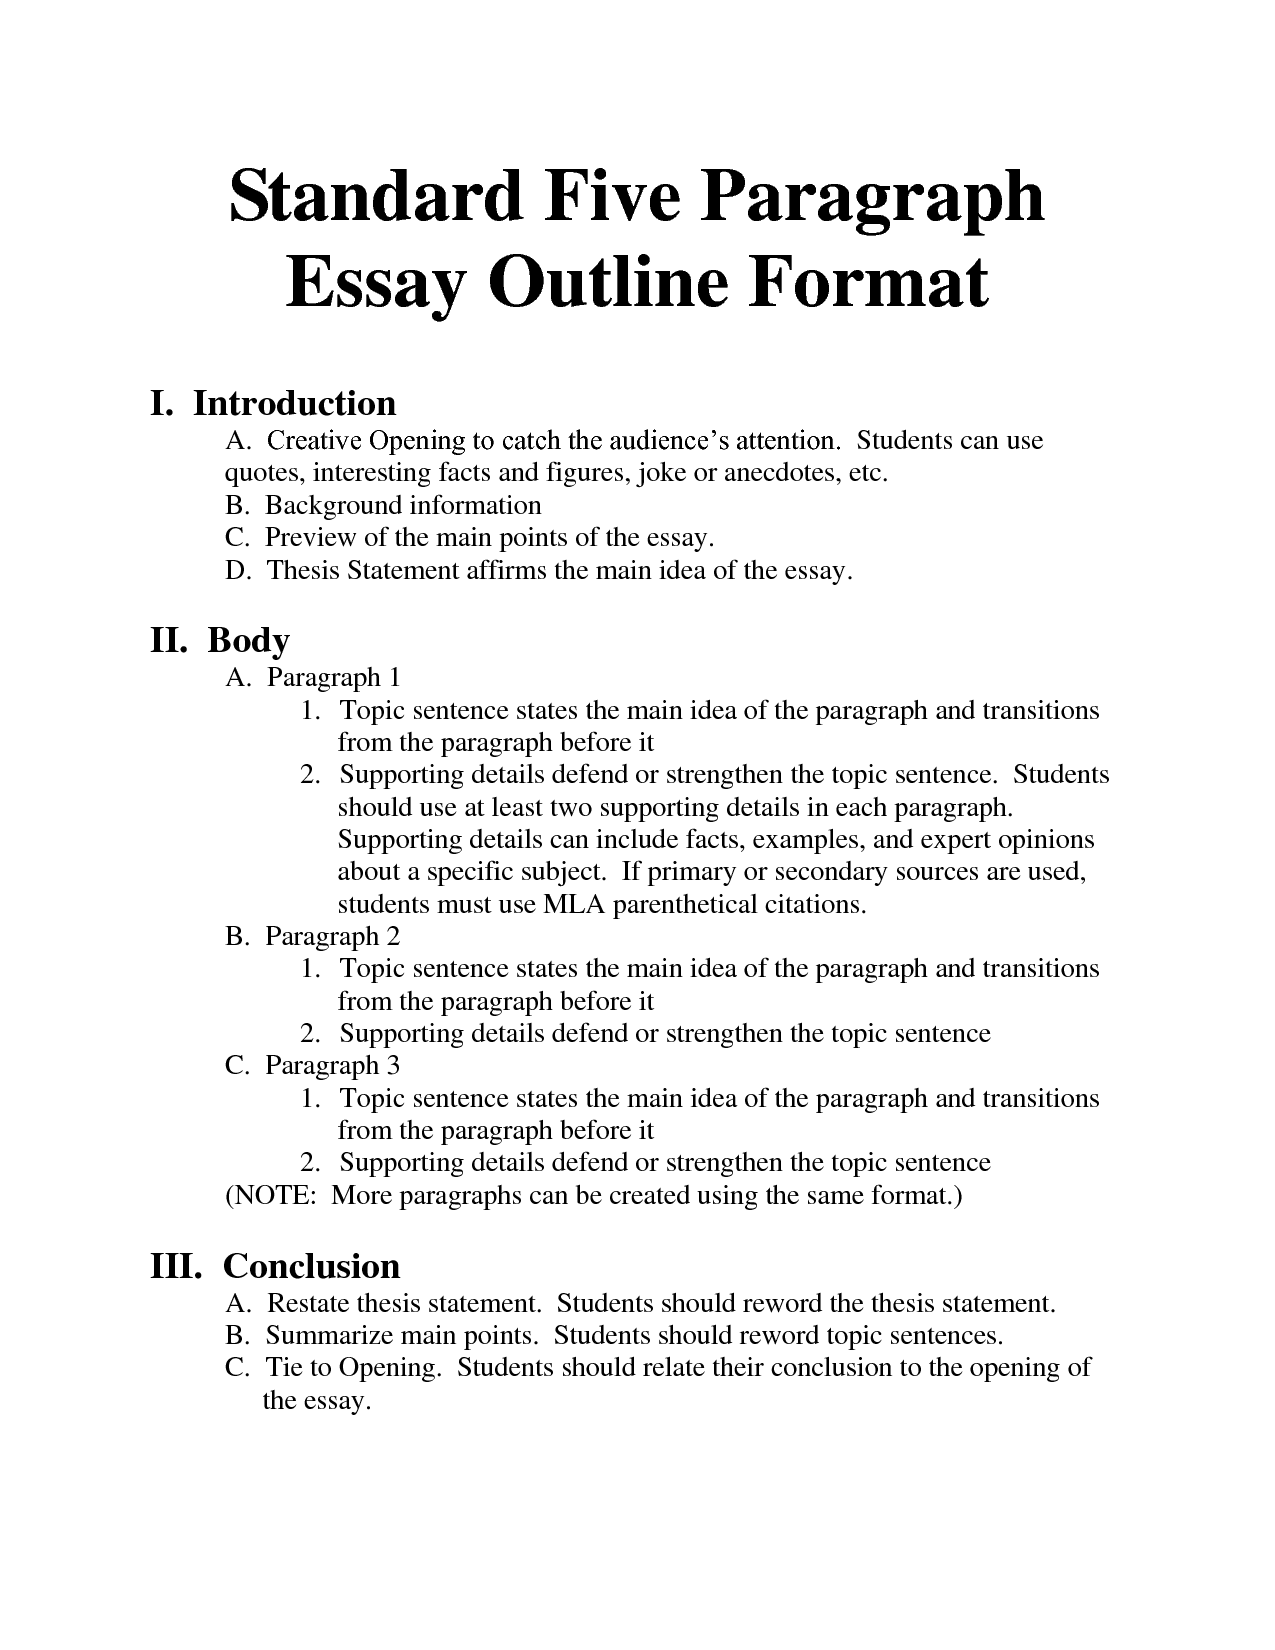 Write a well-developed essay of two to three paragraphs on the topic below.?